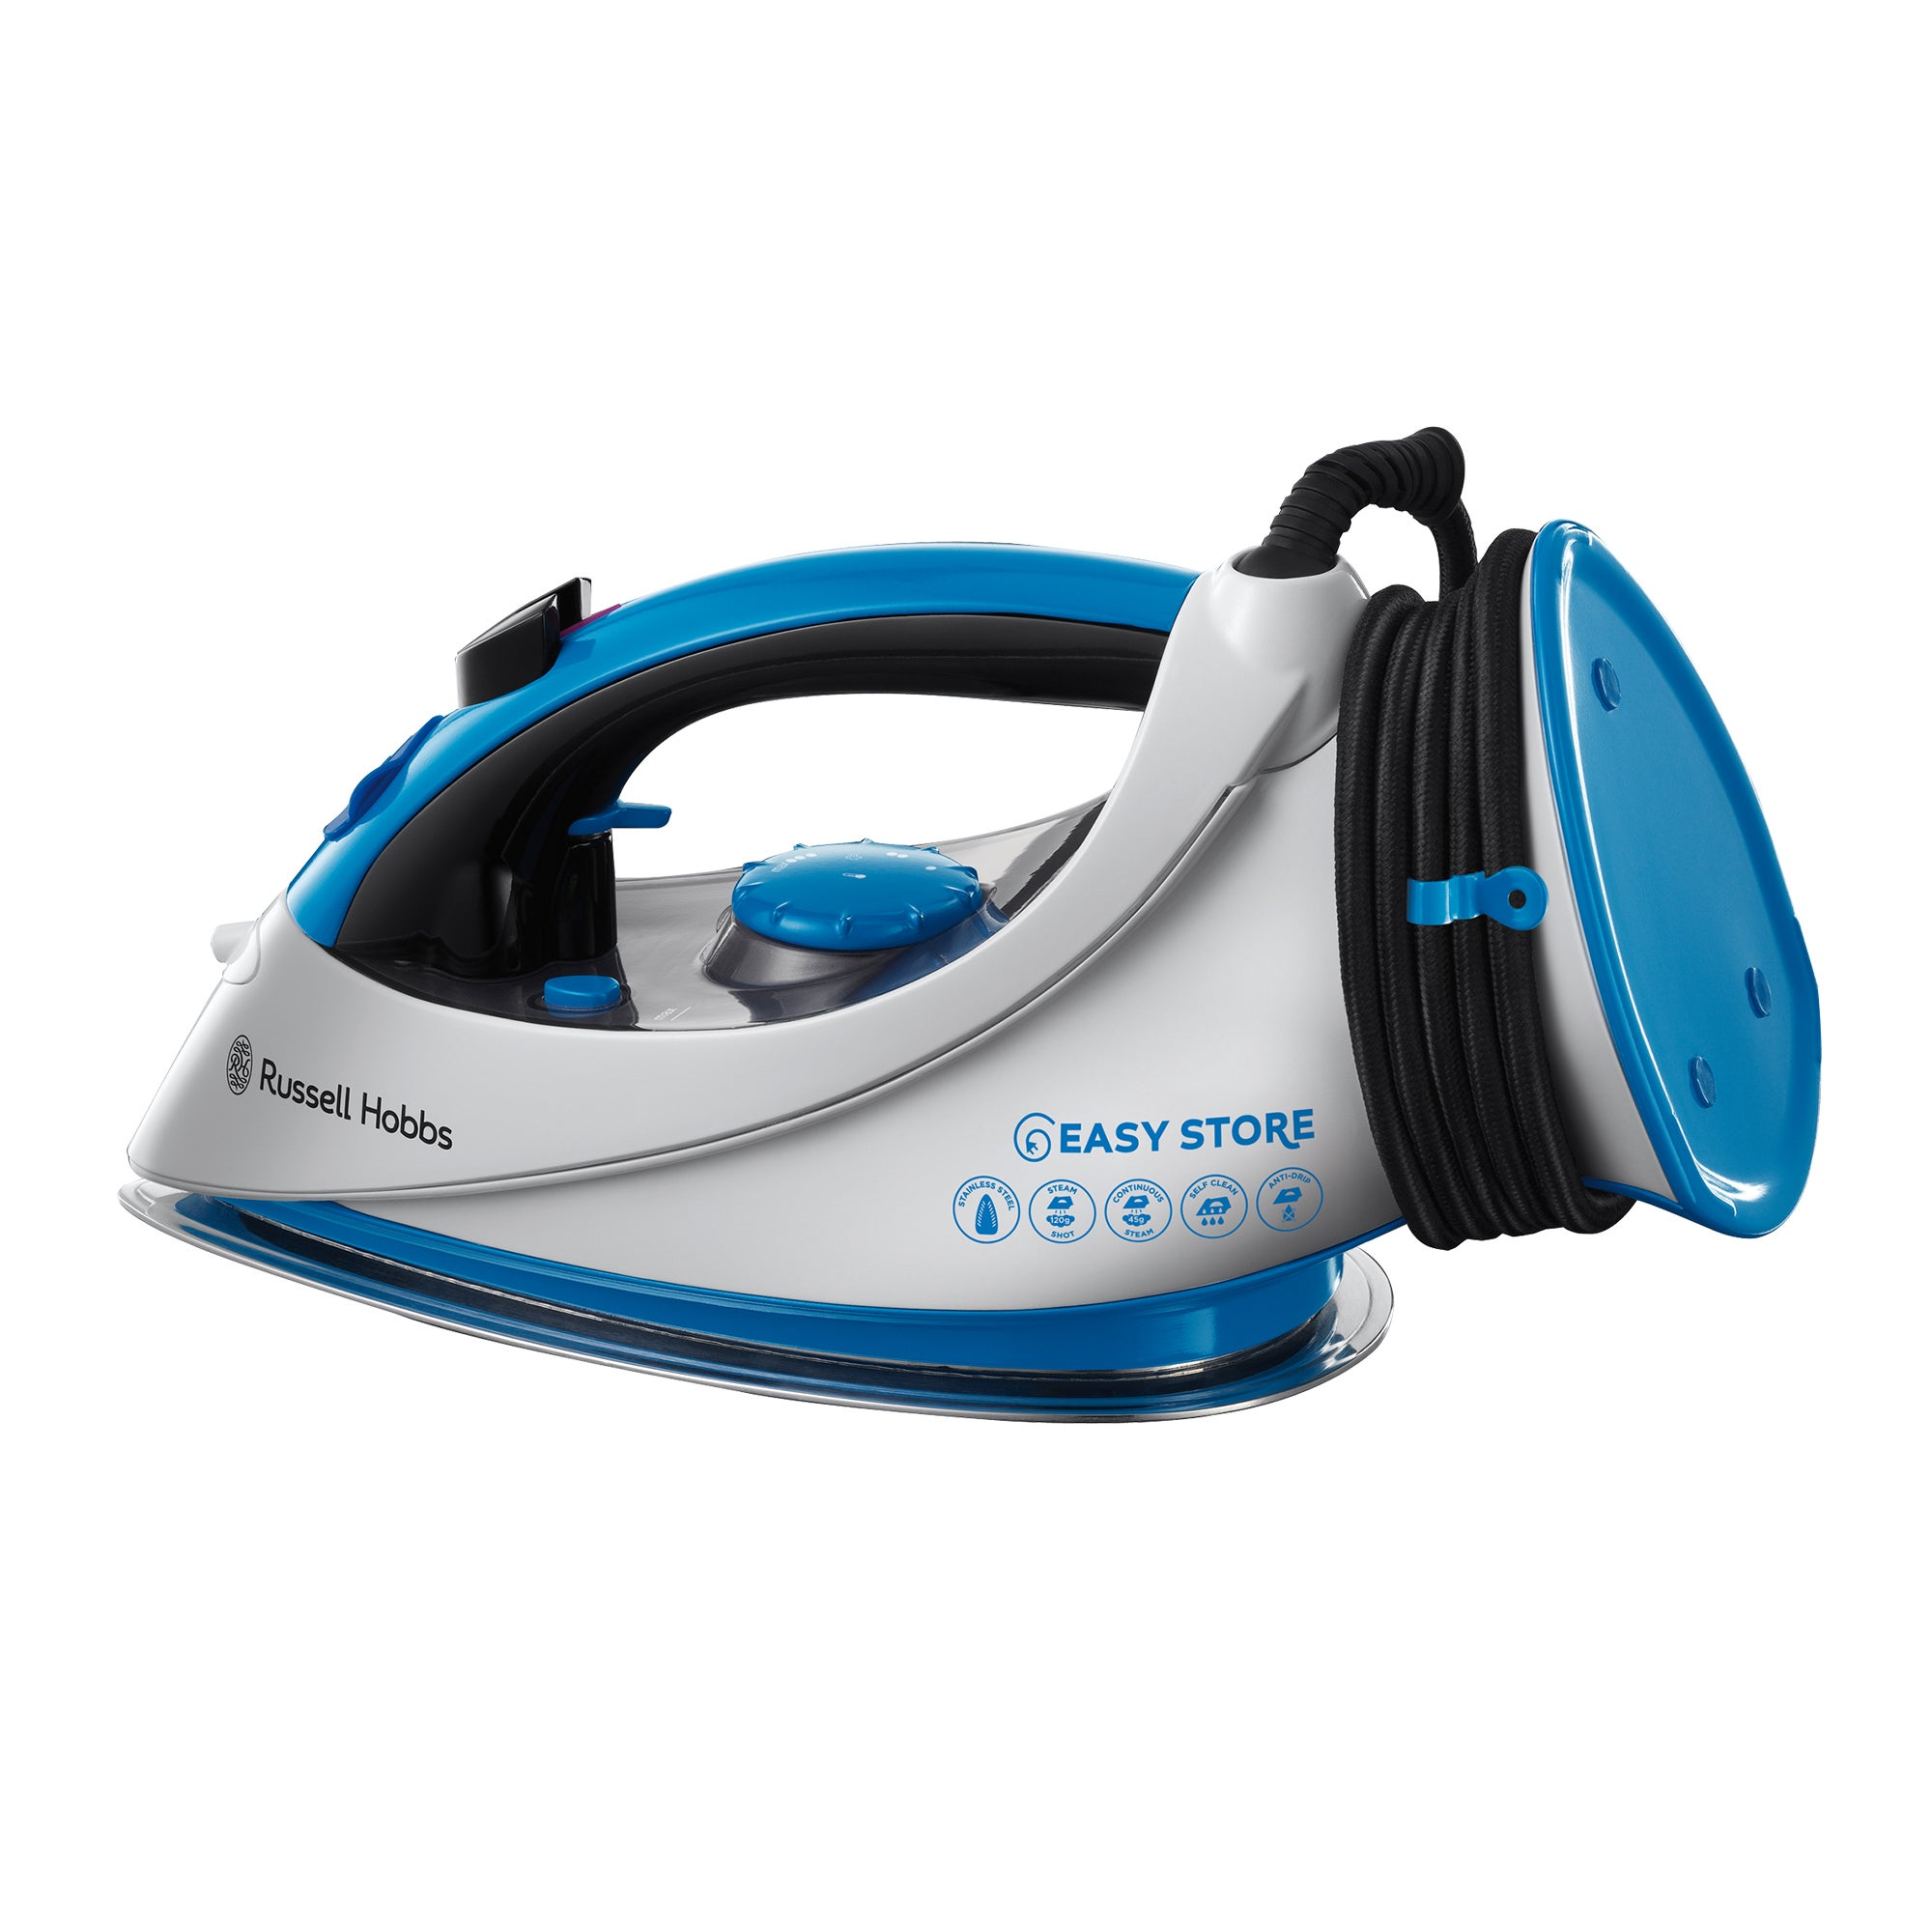 Russell Hobbs 18616 Blue Easy Wrap and Clip Iron